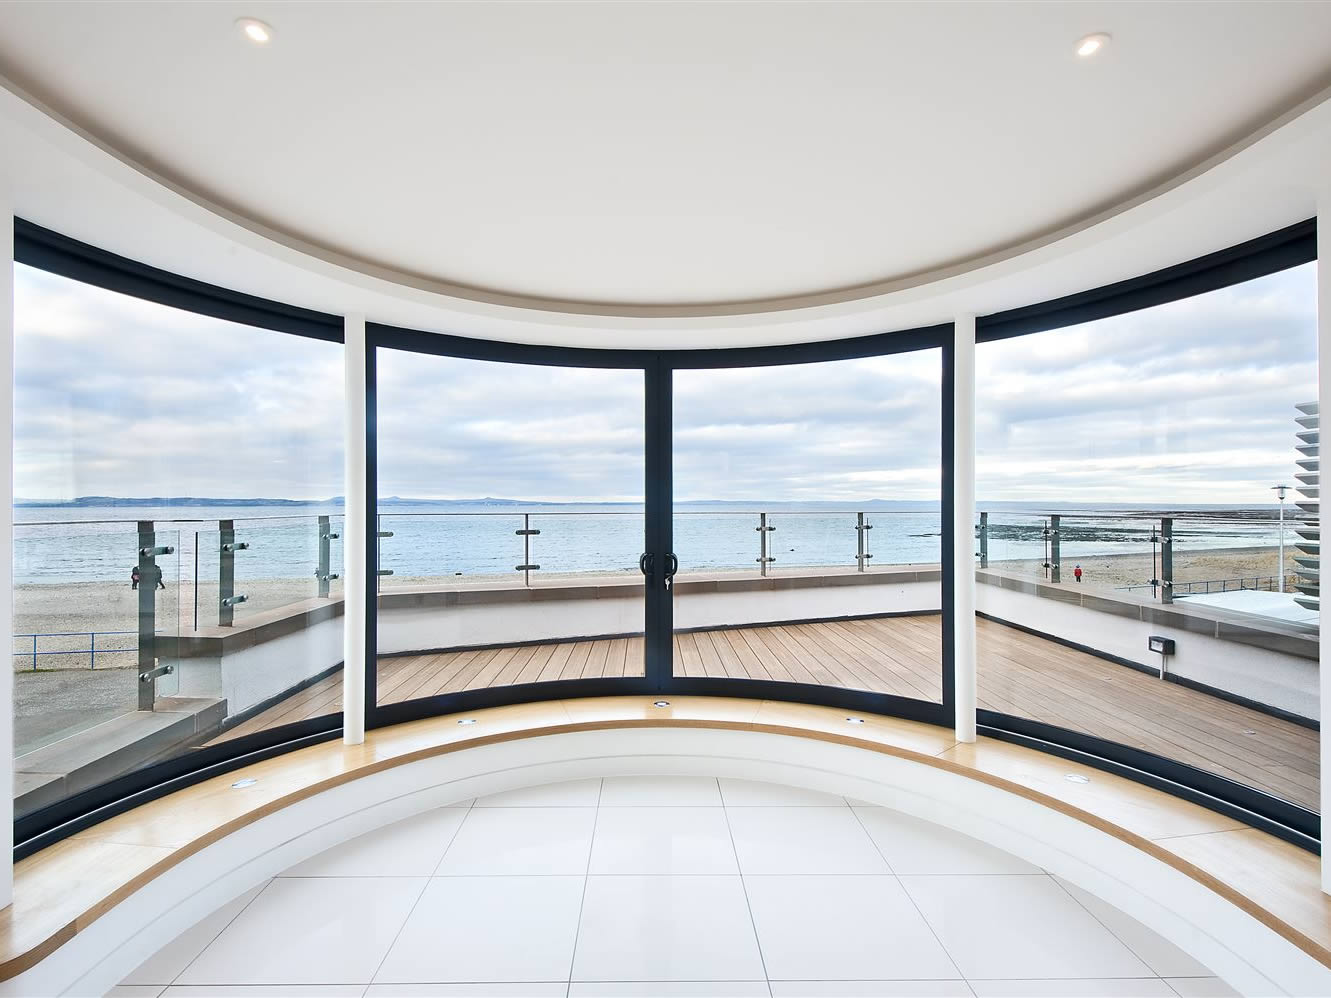 Curved windows thrust for the view at promenade house for Curved windows